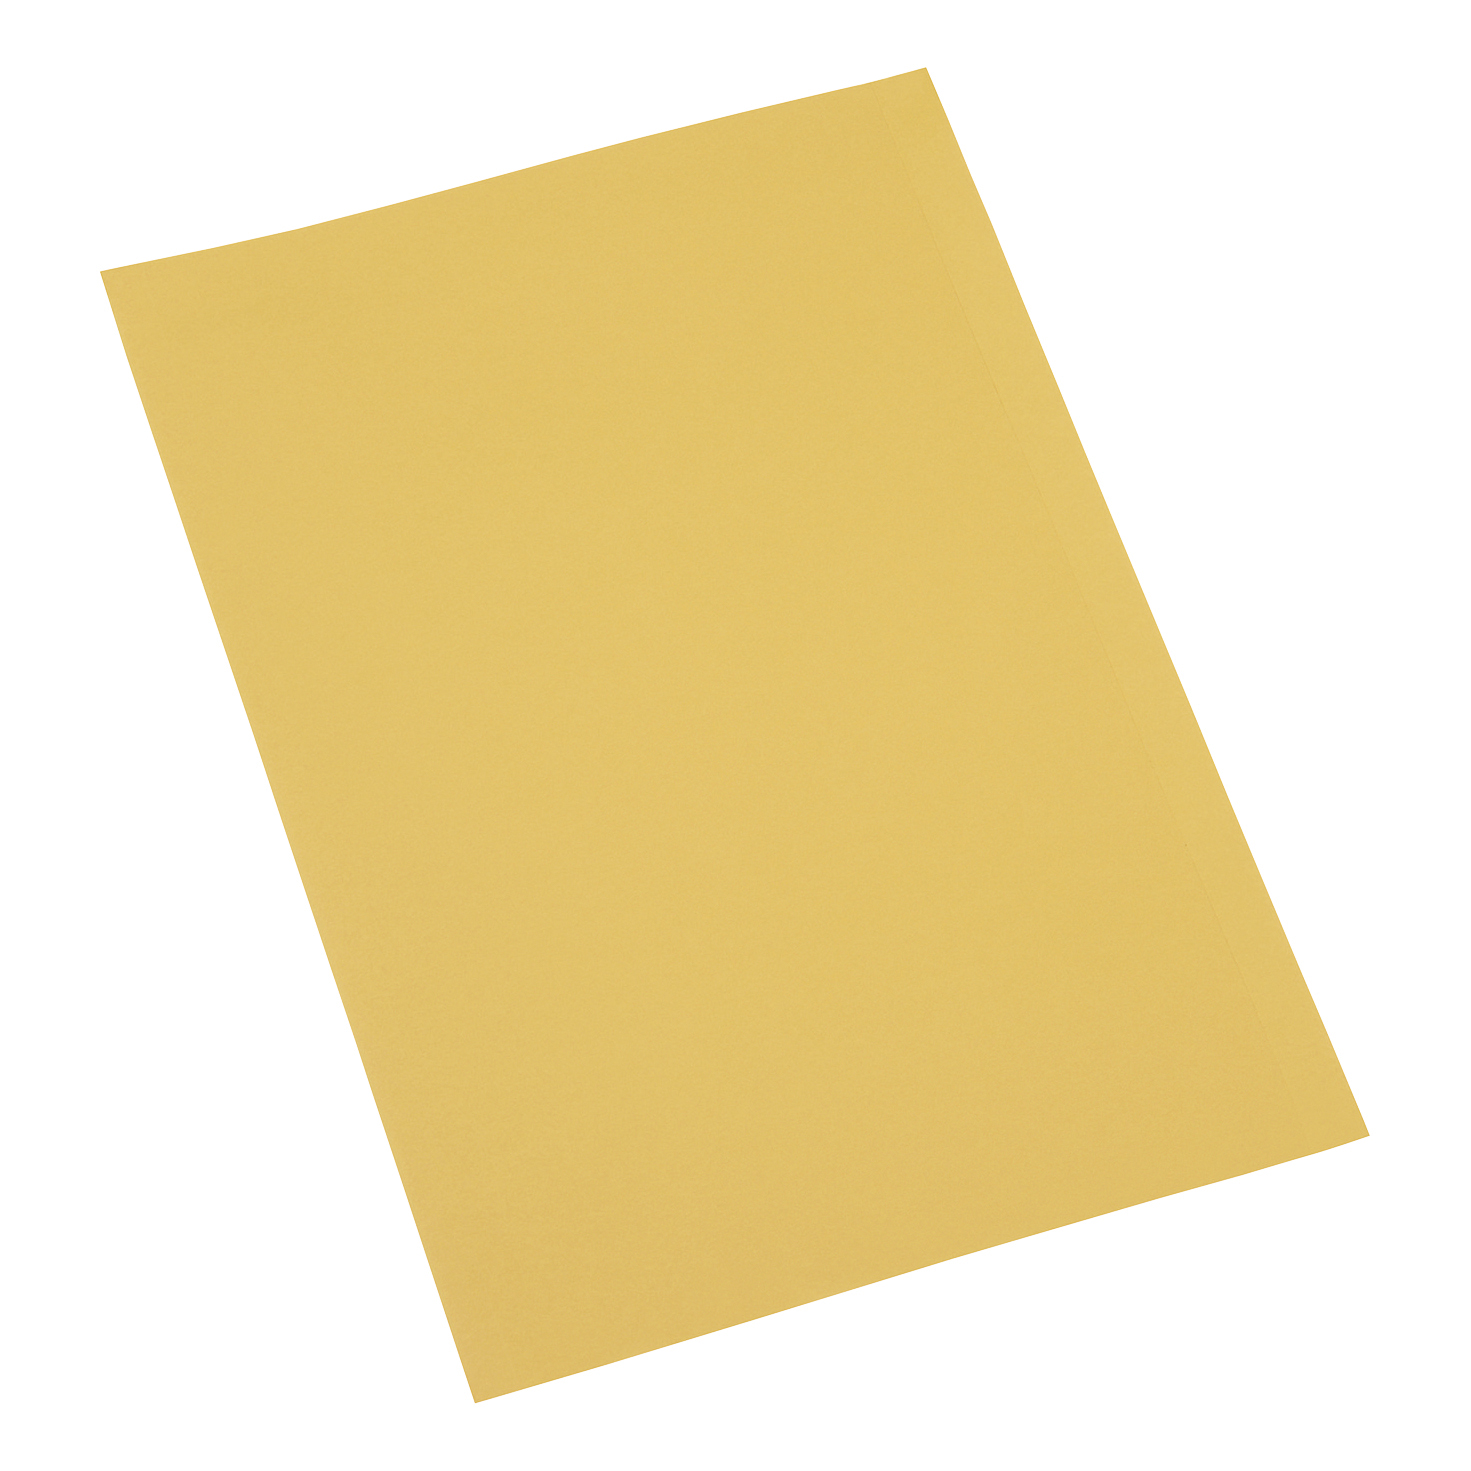 Folders 5 Star Office Square Cut Folder Recycled 250gsm Foolscap Yellow Pack 100